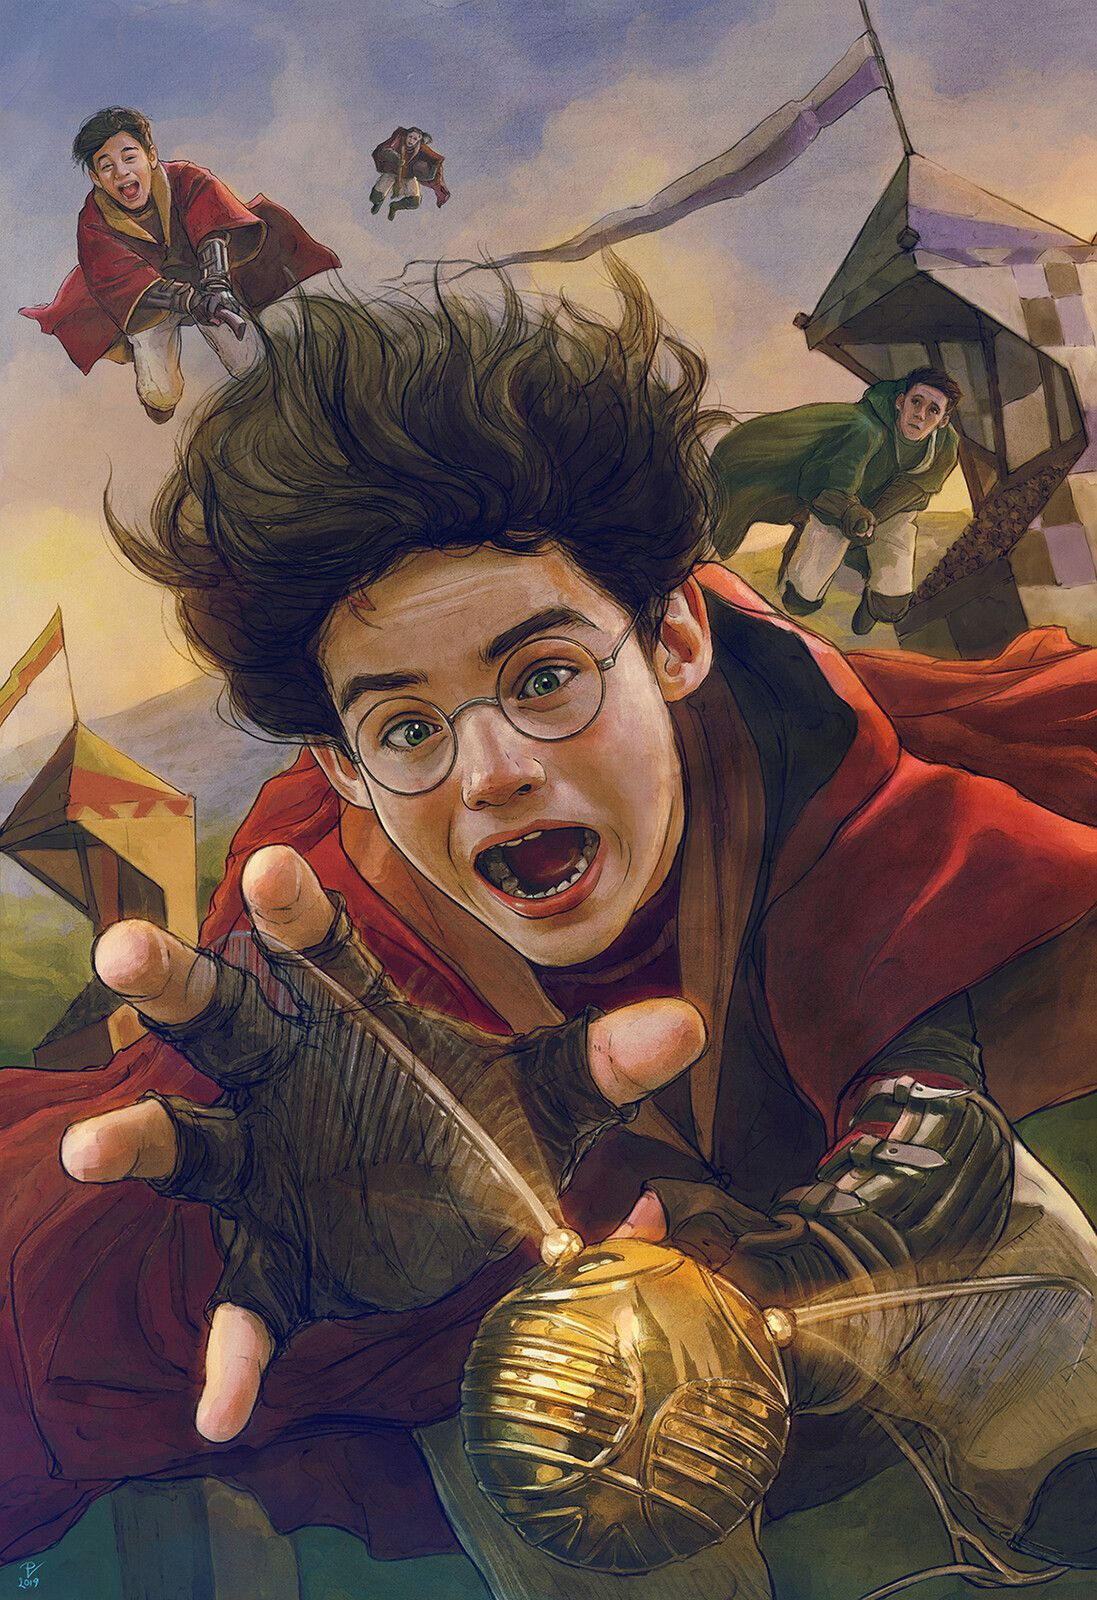 Harry Potter and the Philosopher's Stone-FanArt-16, Vladislav Pantic